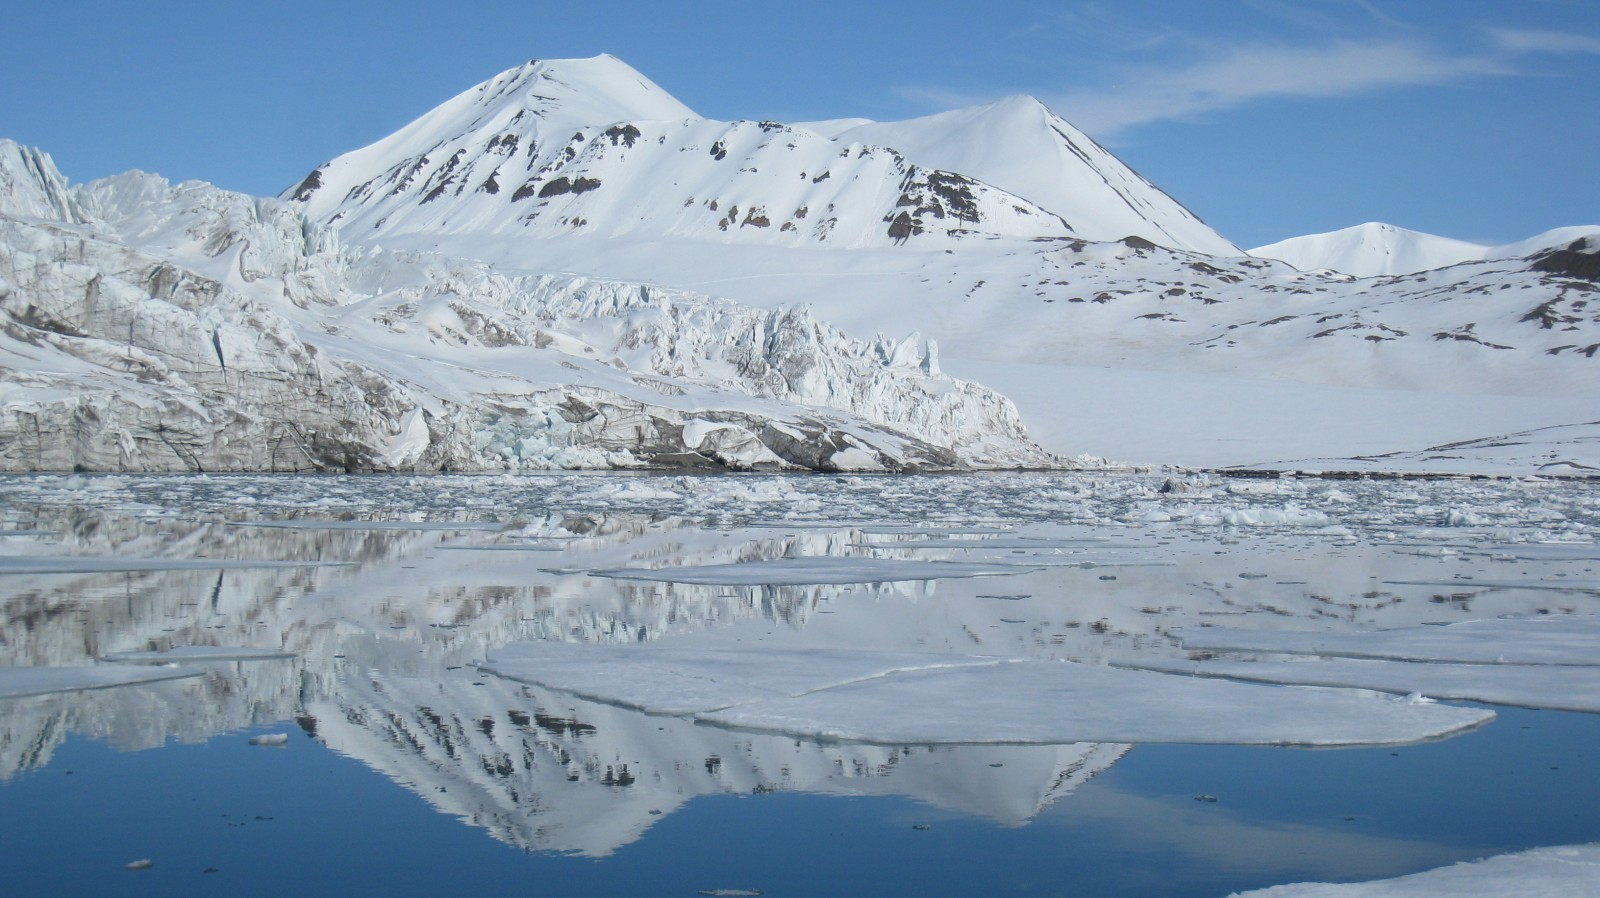 Water reflection in Svalbard. Credit: Fabien Darrouzet (distributed via imaggeo.egu.eu)